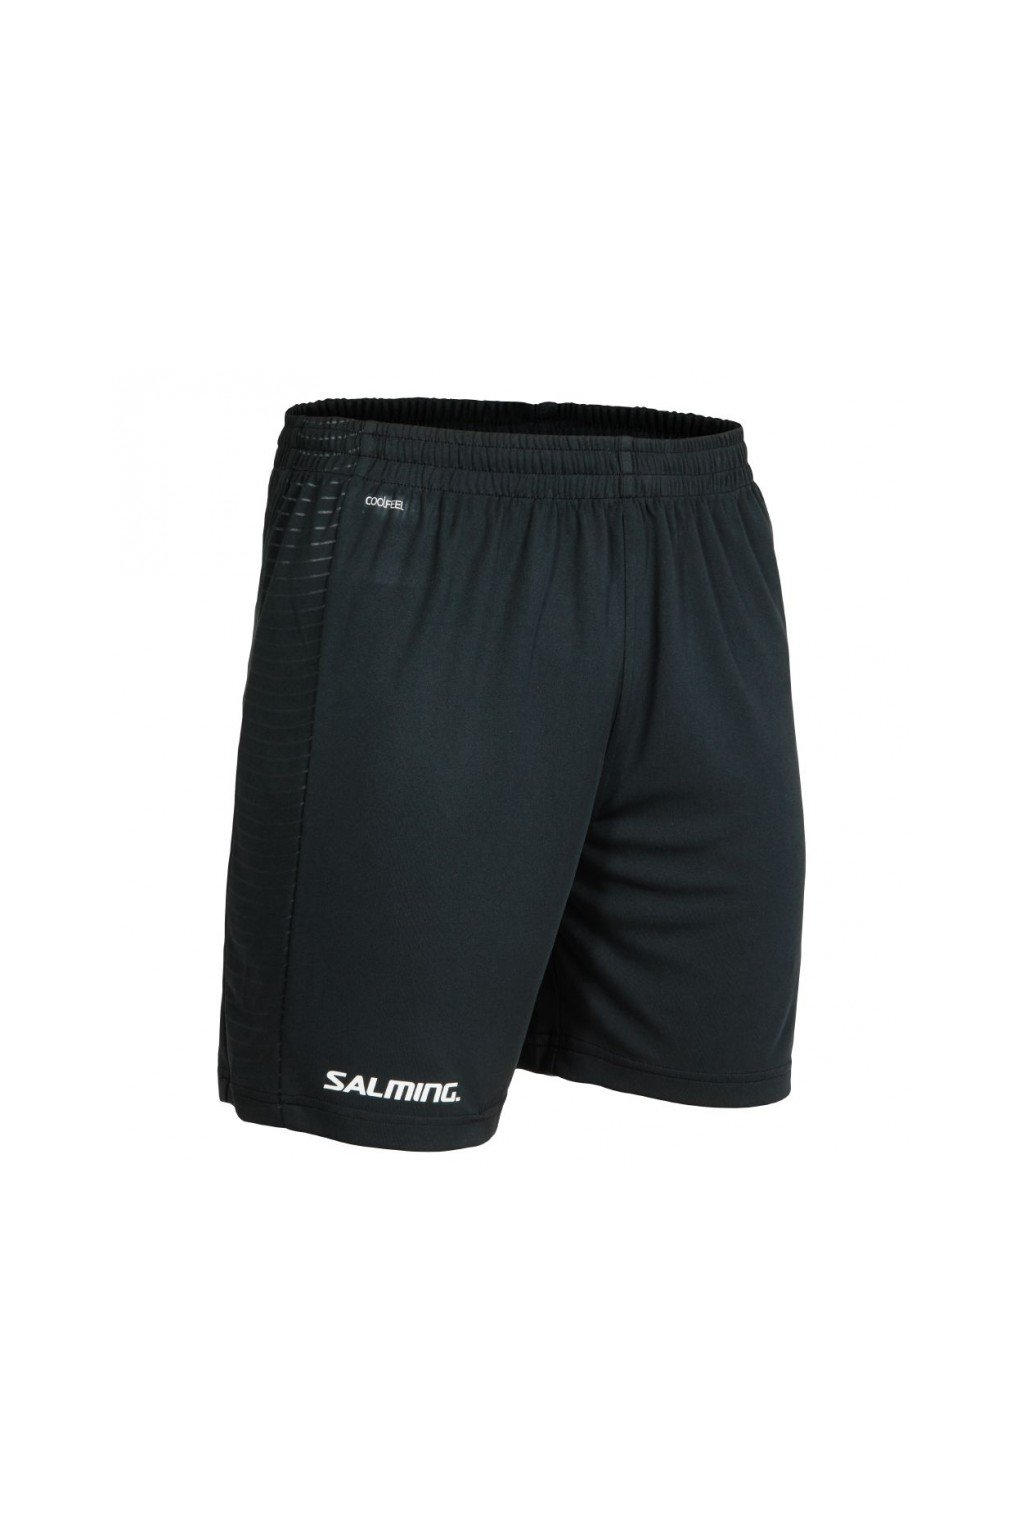 SALMING Granite Game Shorts Men Black